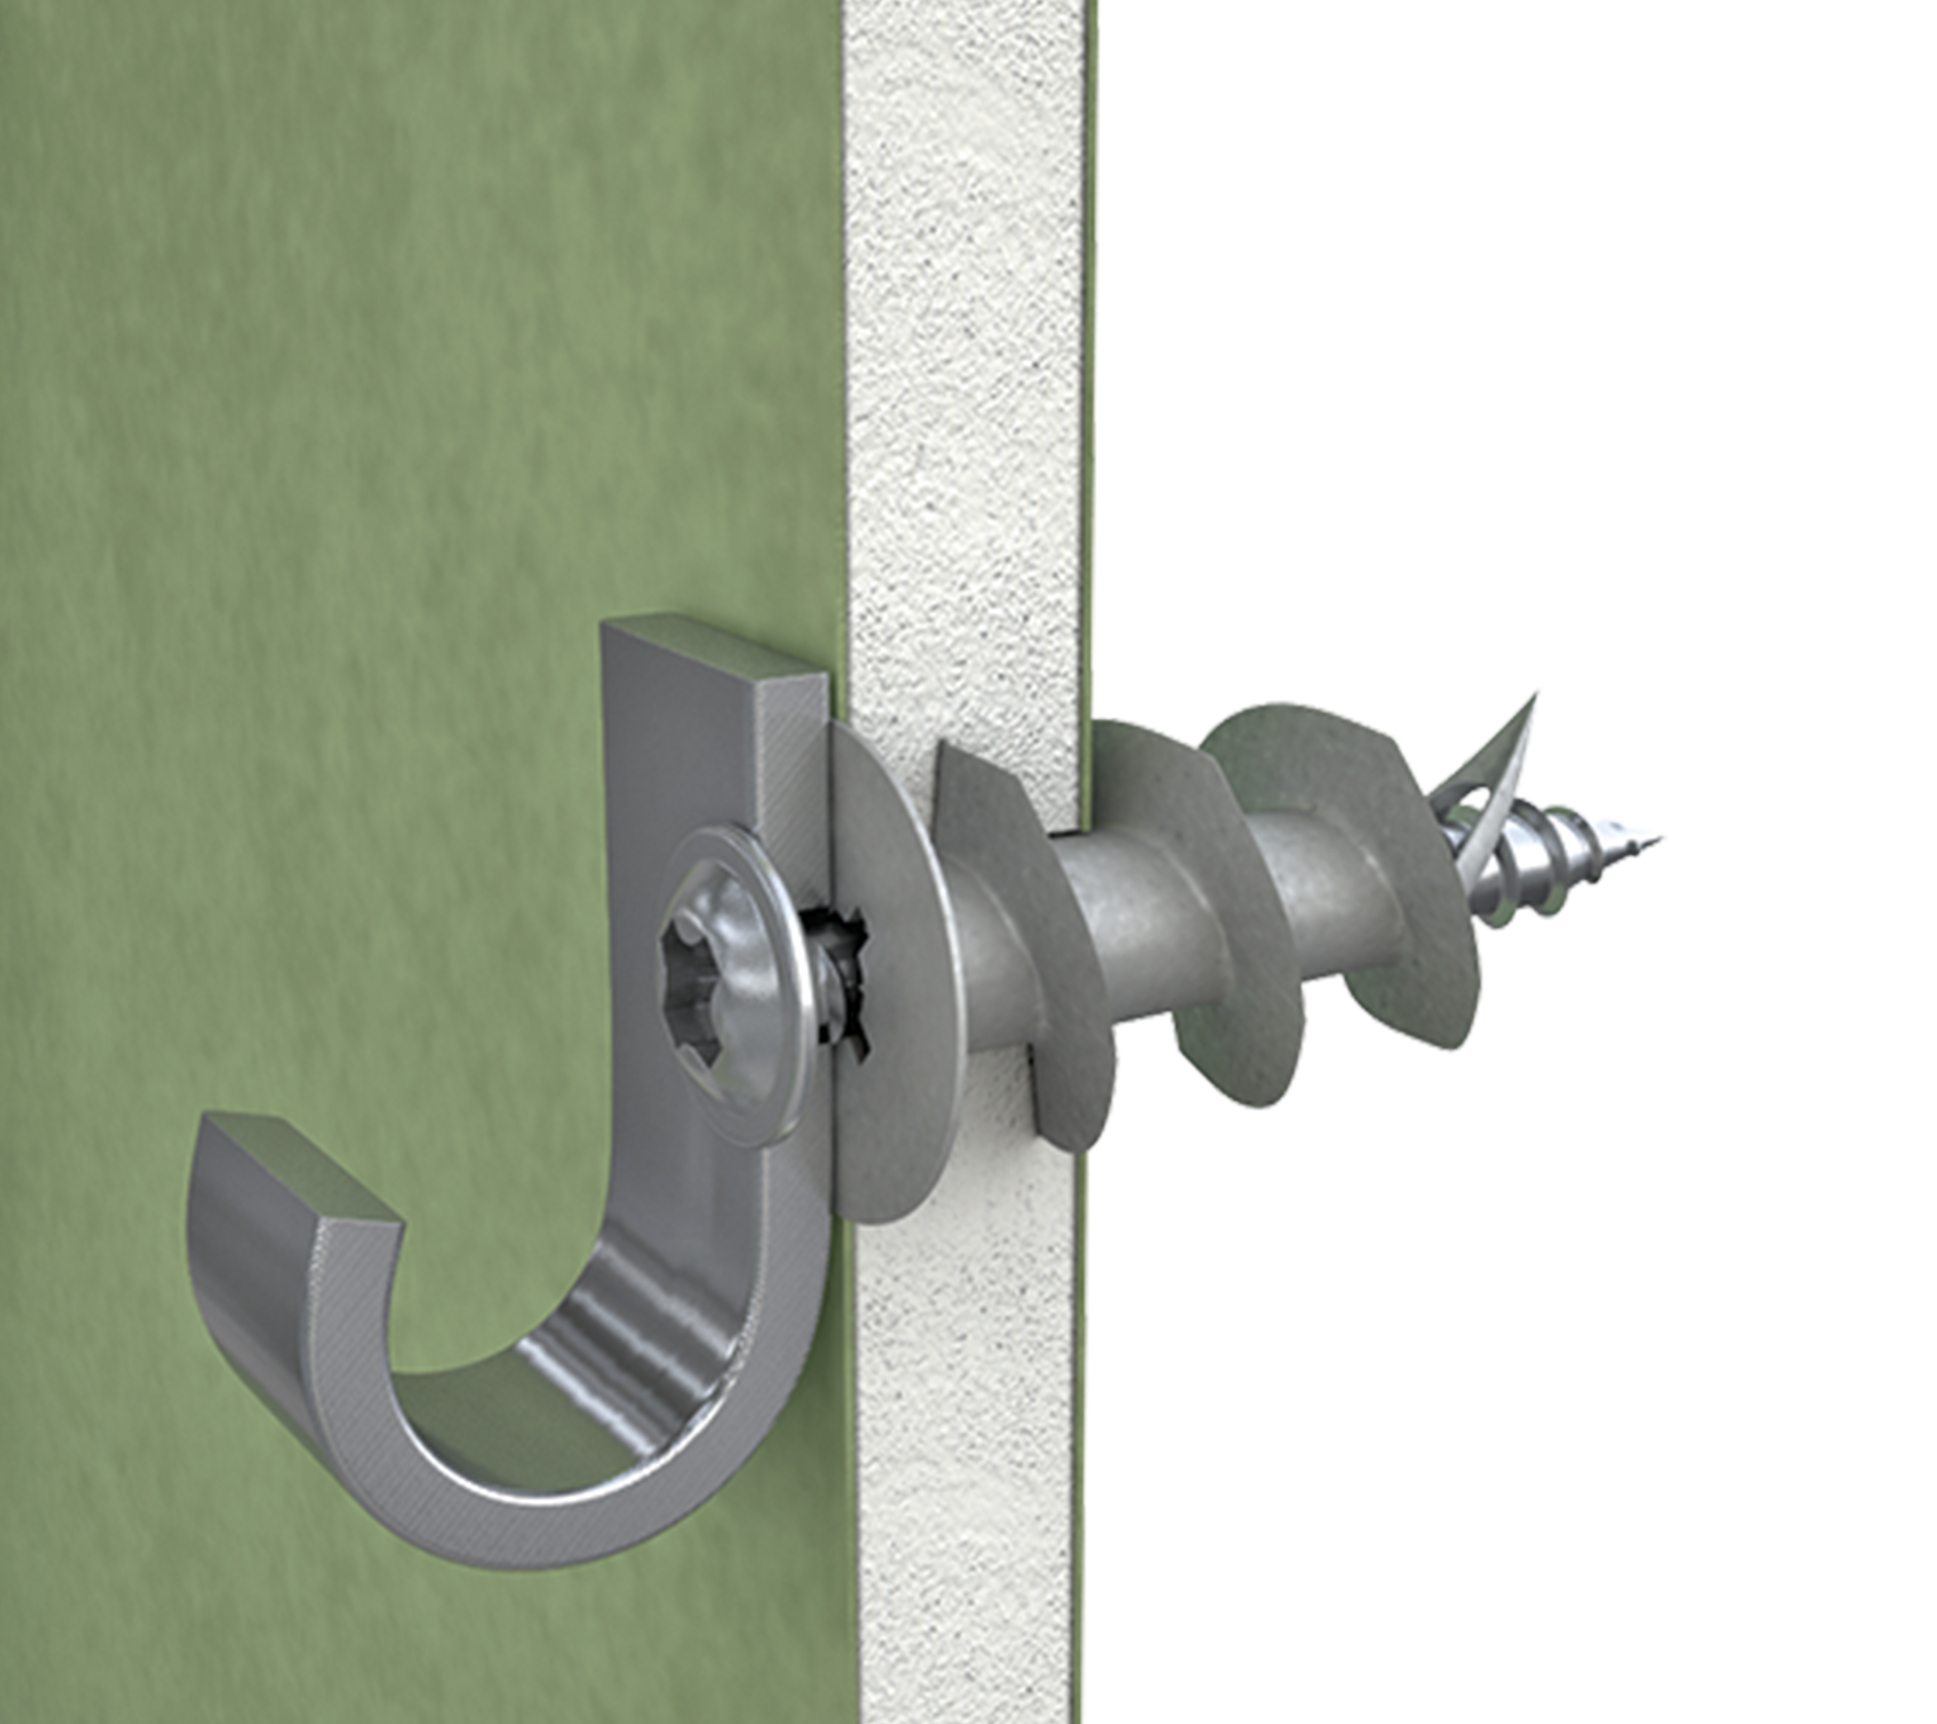 Interset fixing for permanent anchorages in cavity walls